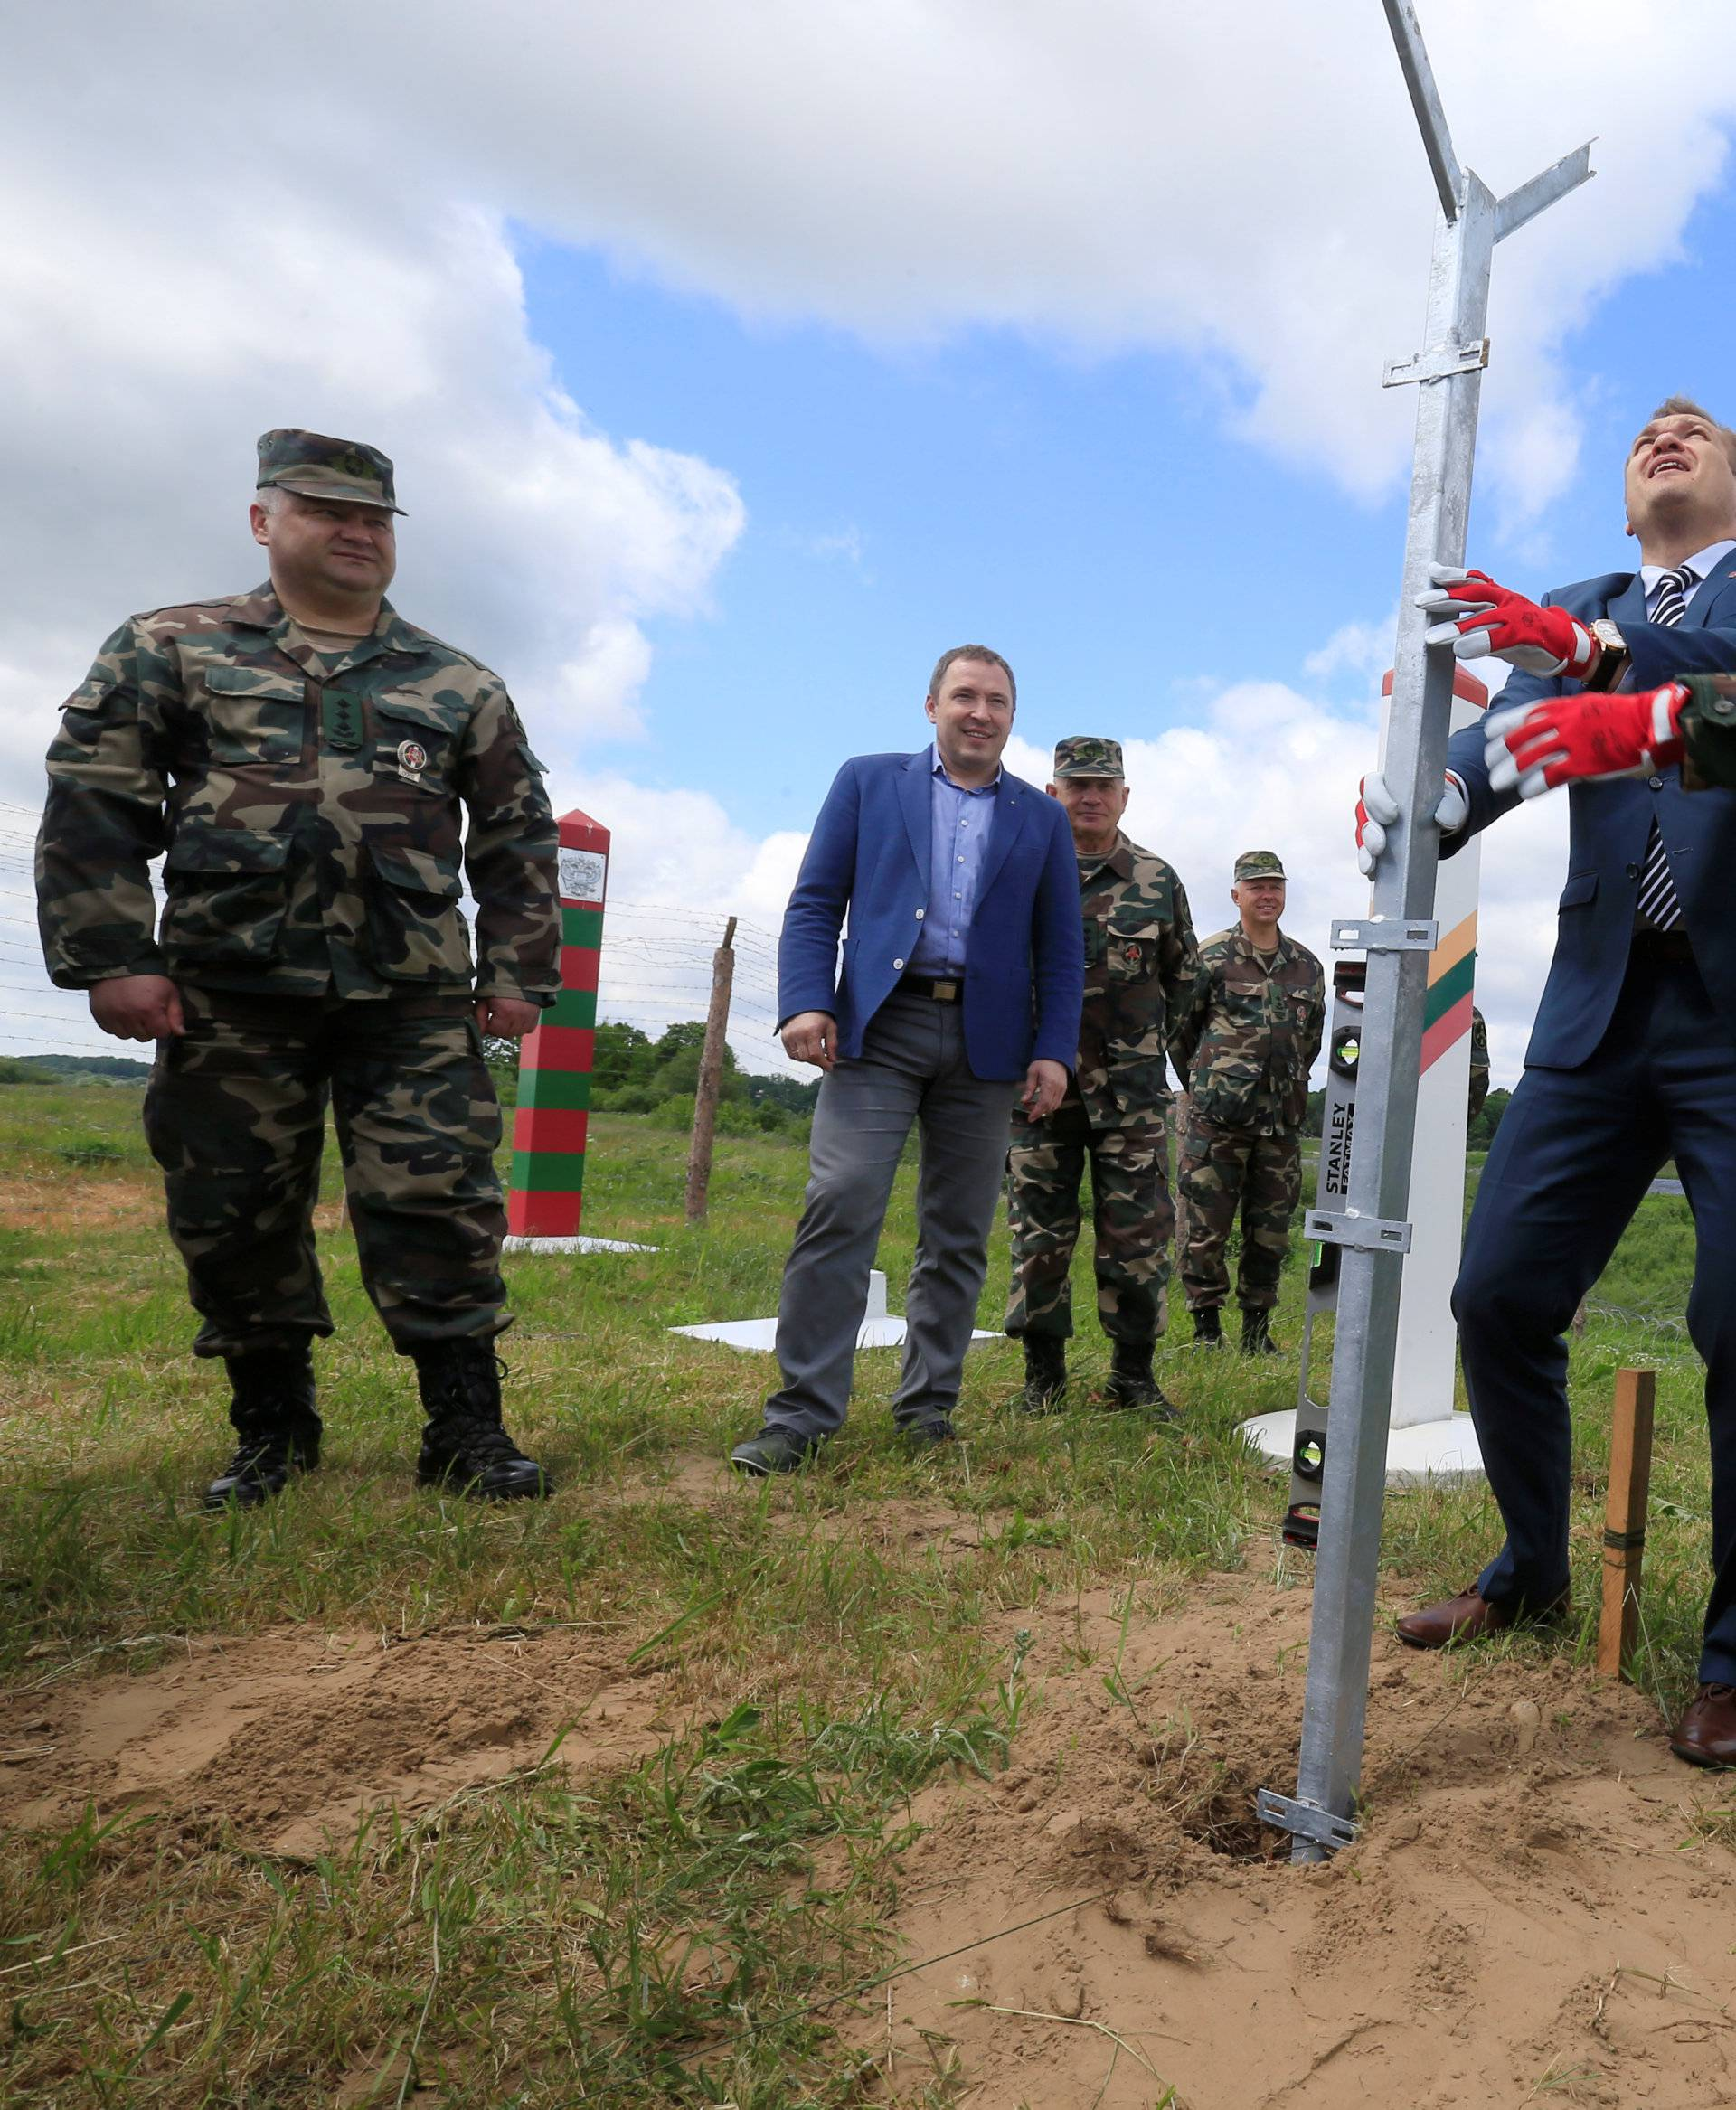 Commander of Lithuanian state border guard Pozela and Interior Minister Misiunas install the first pole for the fence near Sudargas border crossing point in Ramoniskiai